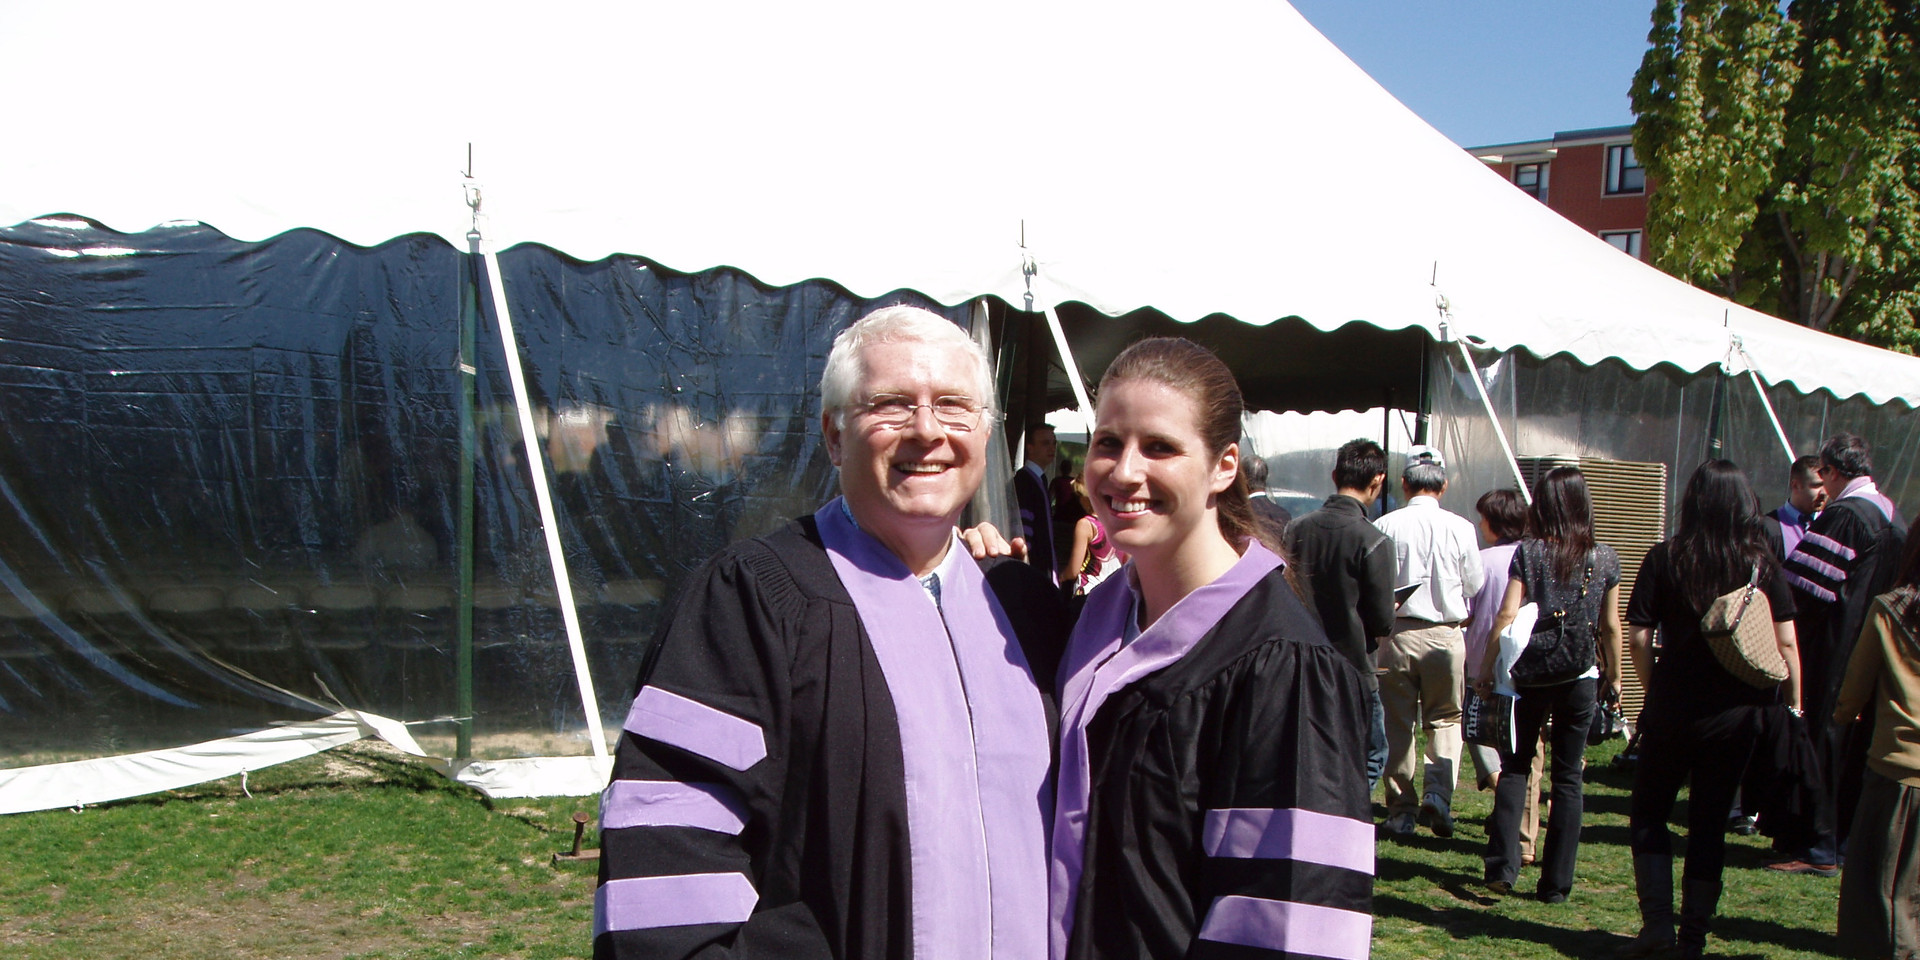 Dr. Nate and Dr. Heidi at Tufts Dental School graduation in 2008